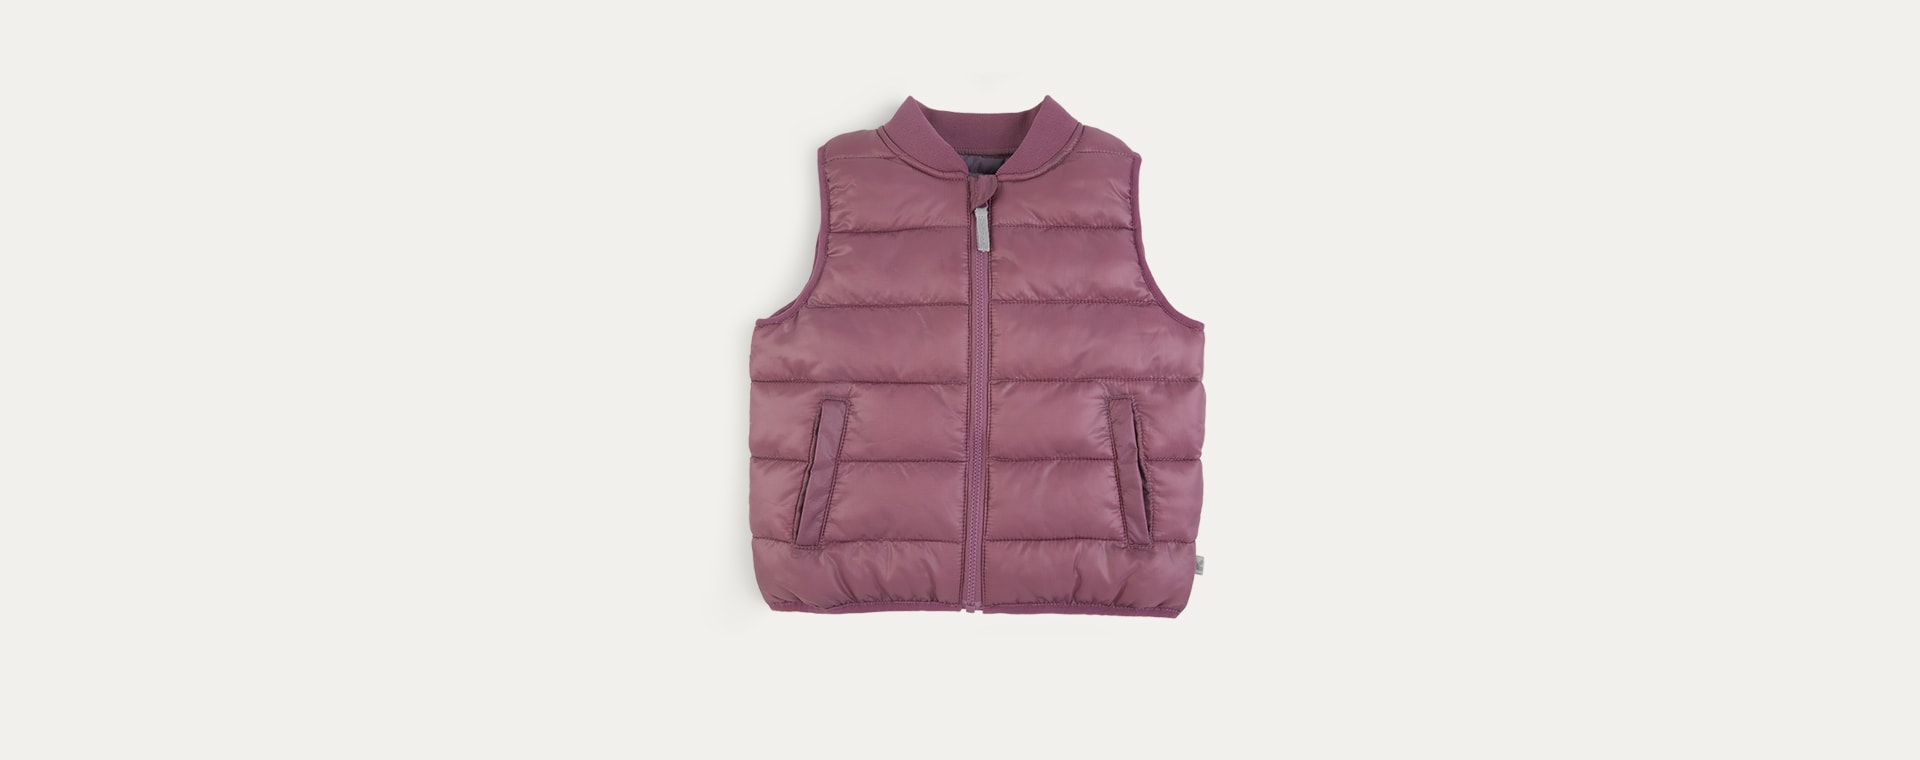 Grape KIDLY Label Recycled Gilet